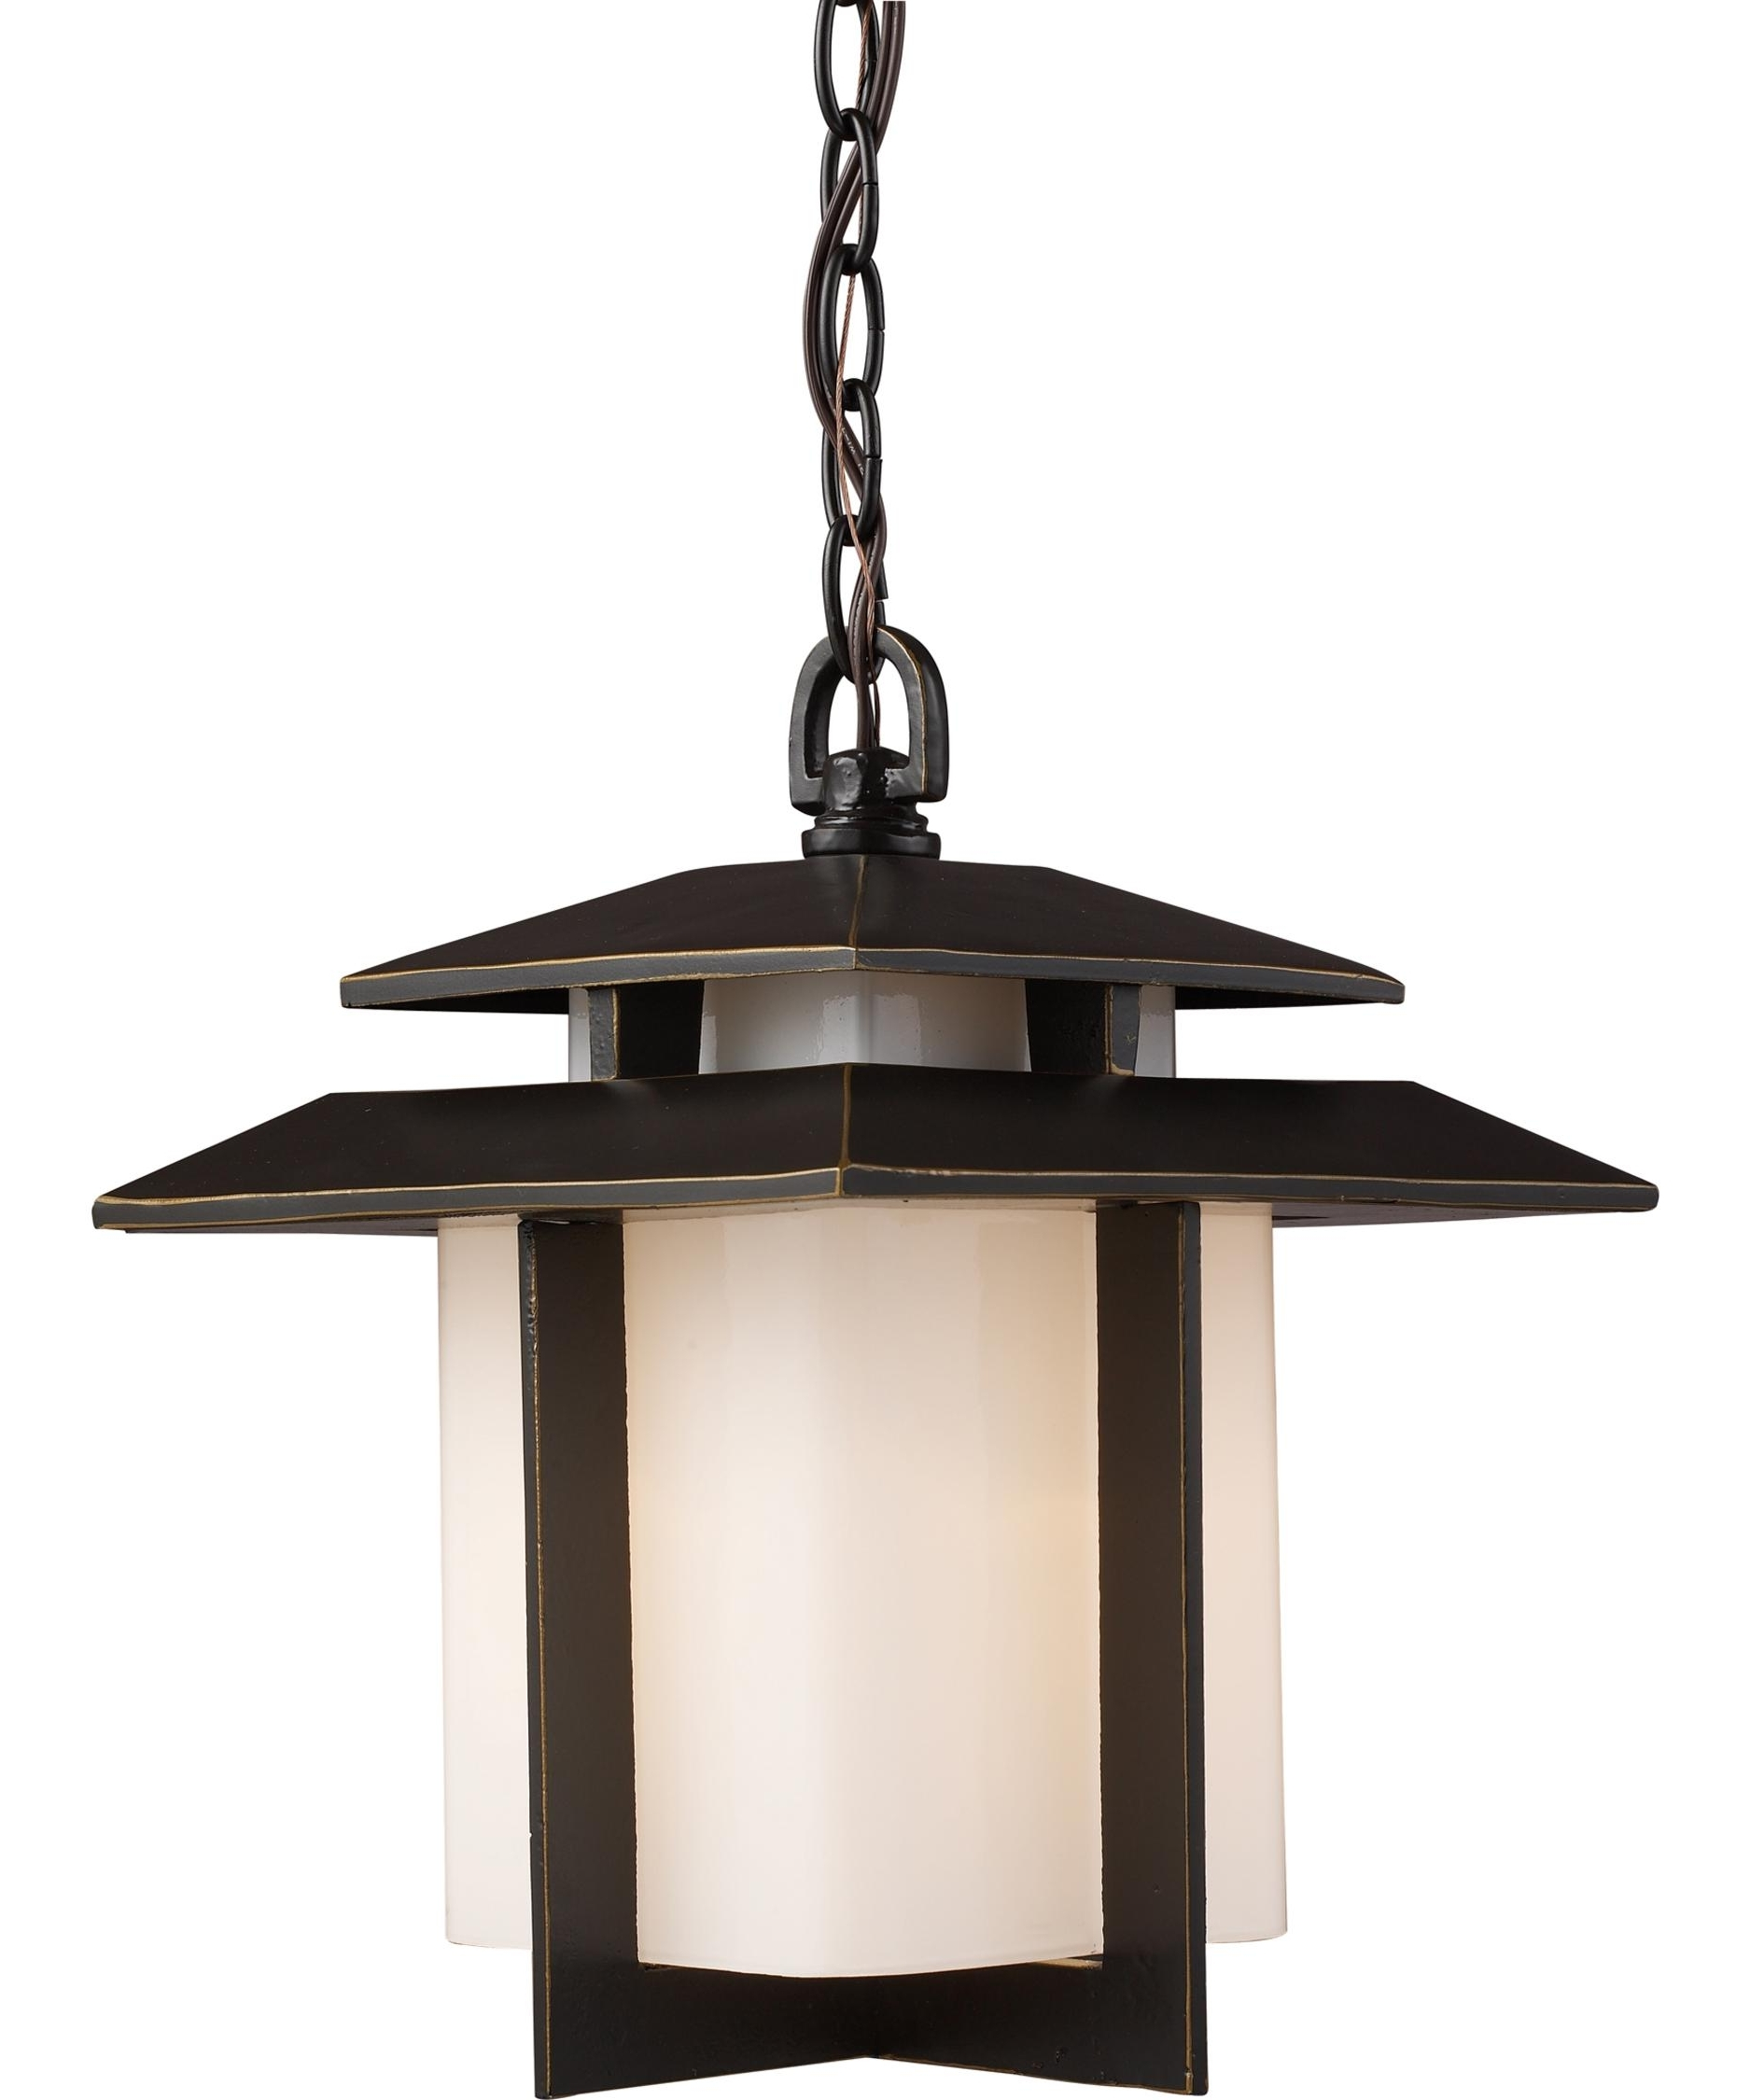 Best And Newest Outdoor Recessed Ceiling Lighting Fixtures Inside Light : Outdoor Lighting Ideas Without Electricity Exterior Fixtures (View 3 of 20)